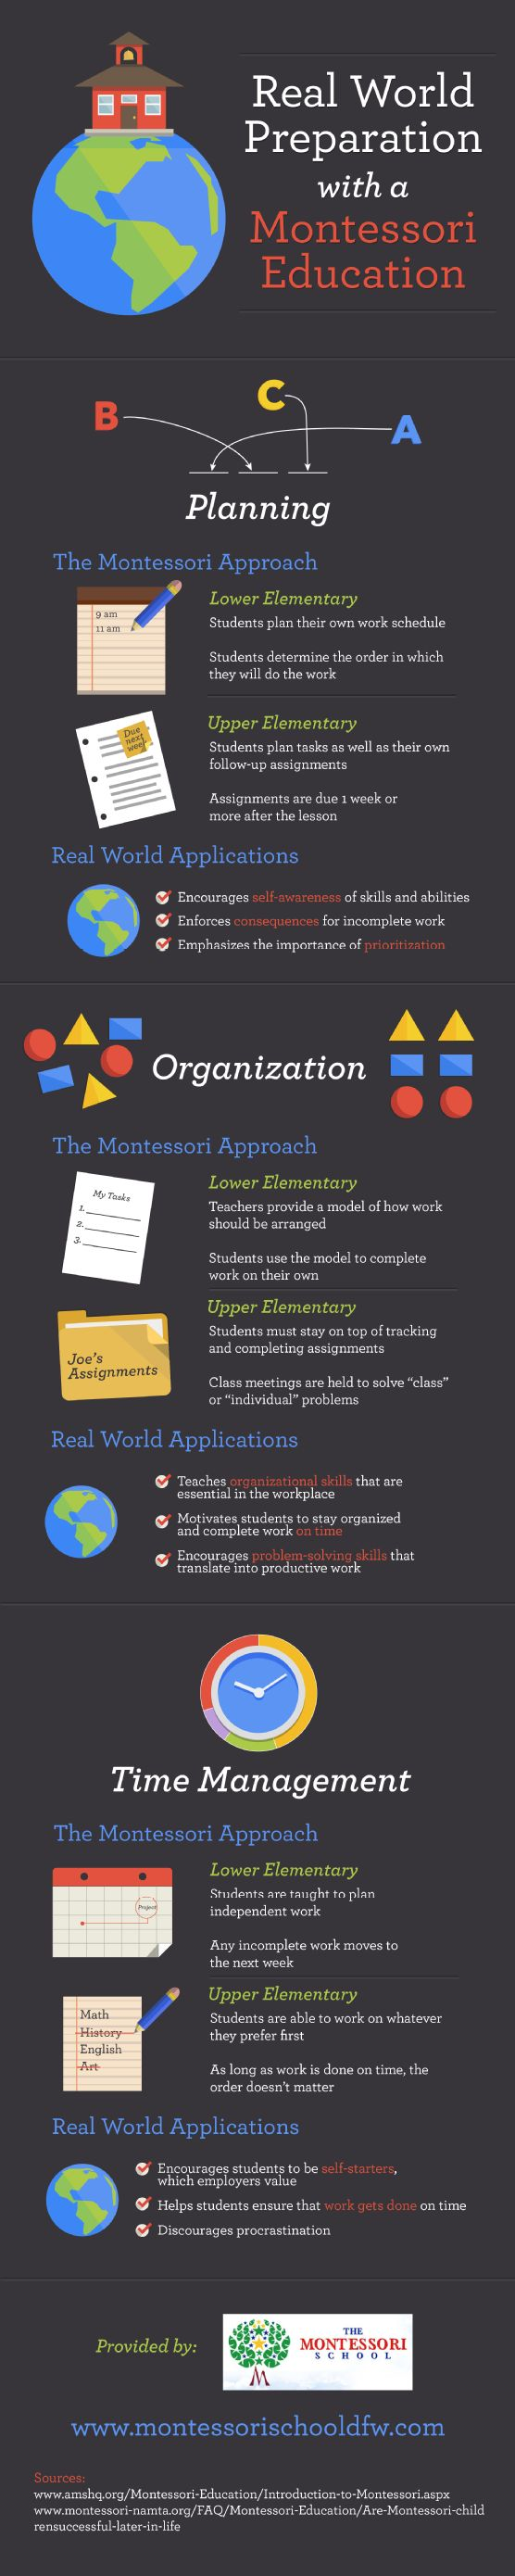 must see organization skills pins staying organized time the montessori approach helps students learn important organizational time management and planning skills